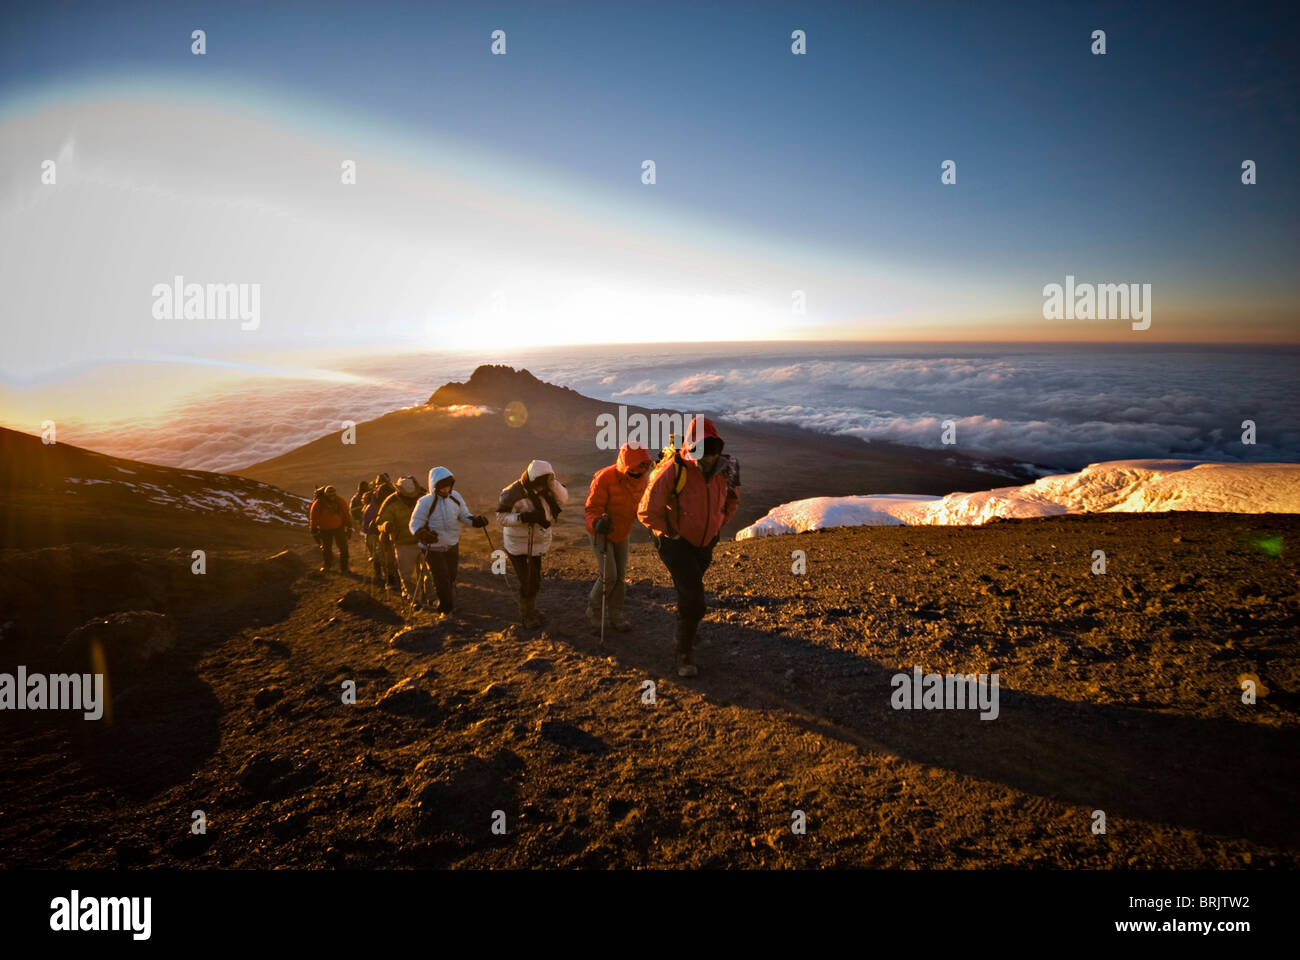 A team of hikers approach the summit of Mt. Kilimanjaro at sunrise after trekking six hours through the night. - Stock Image